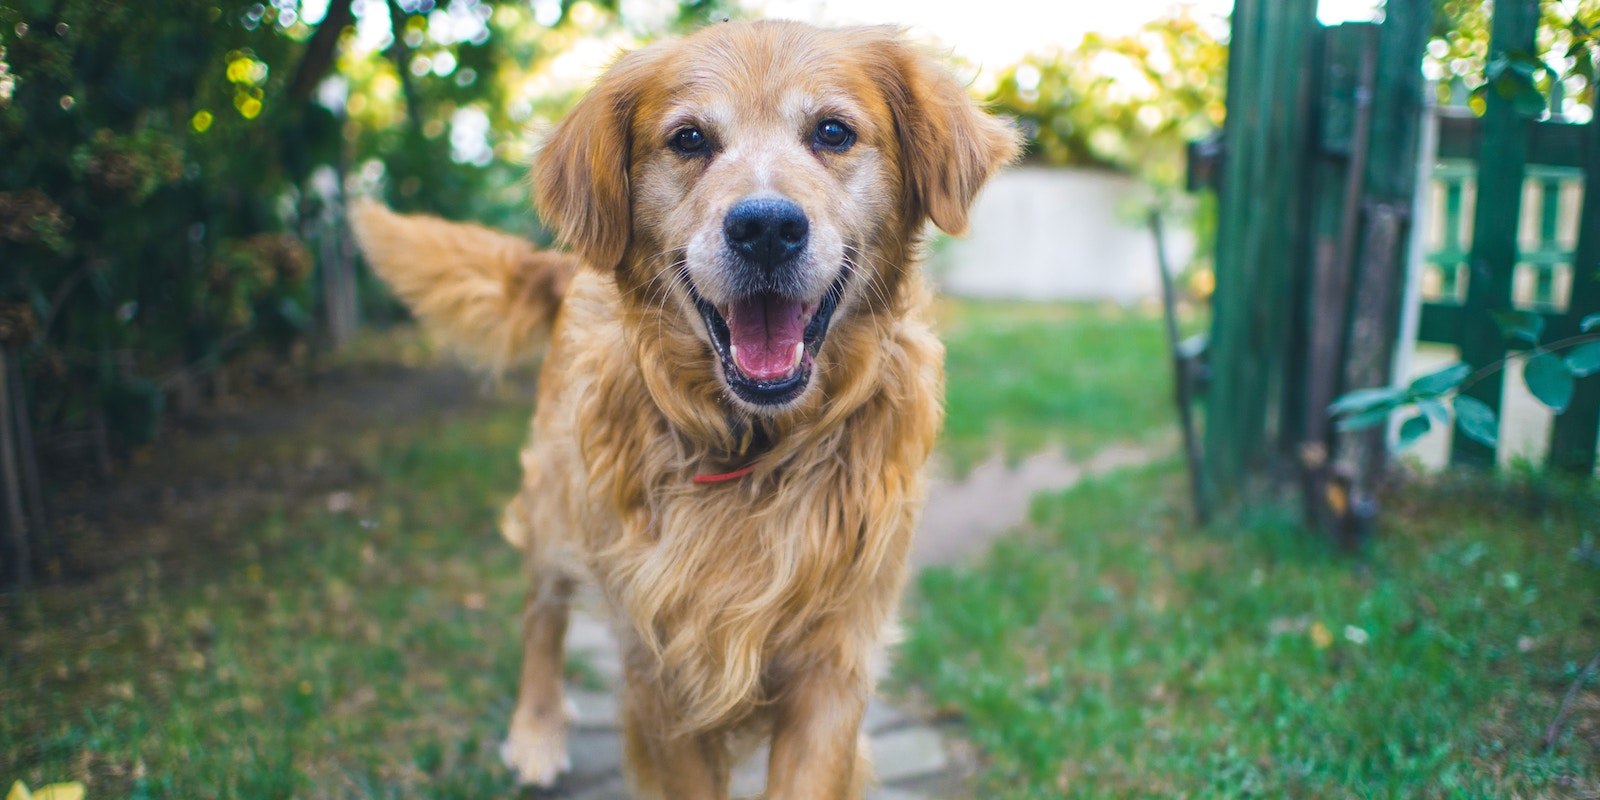 Common health conditions in senior dogs